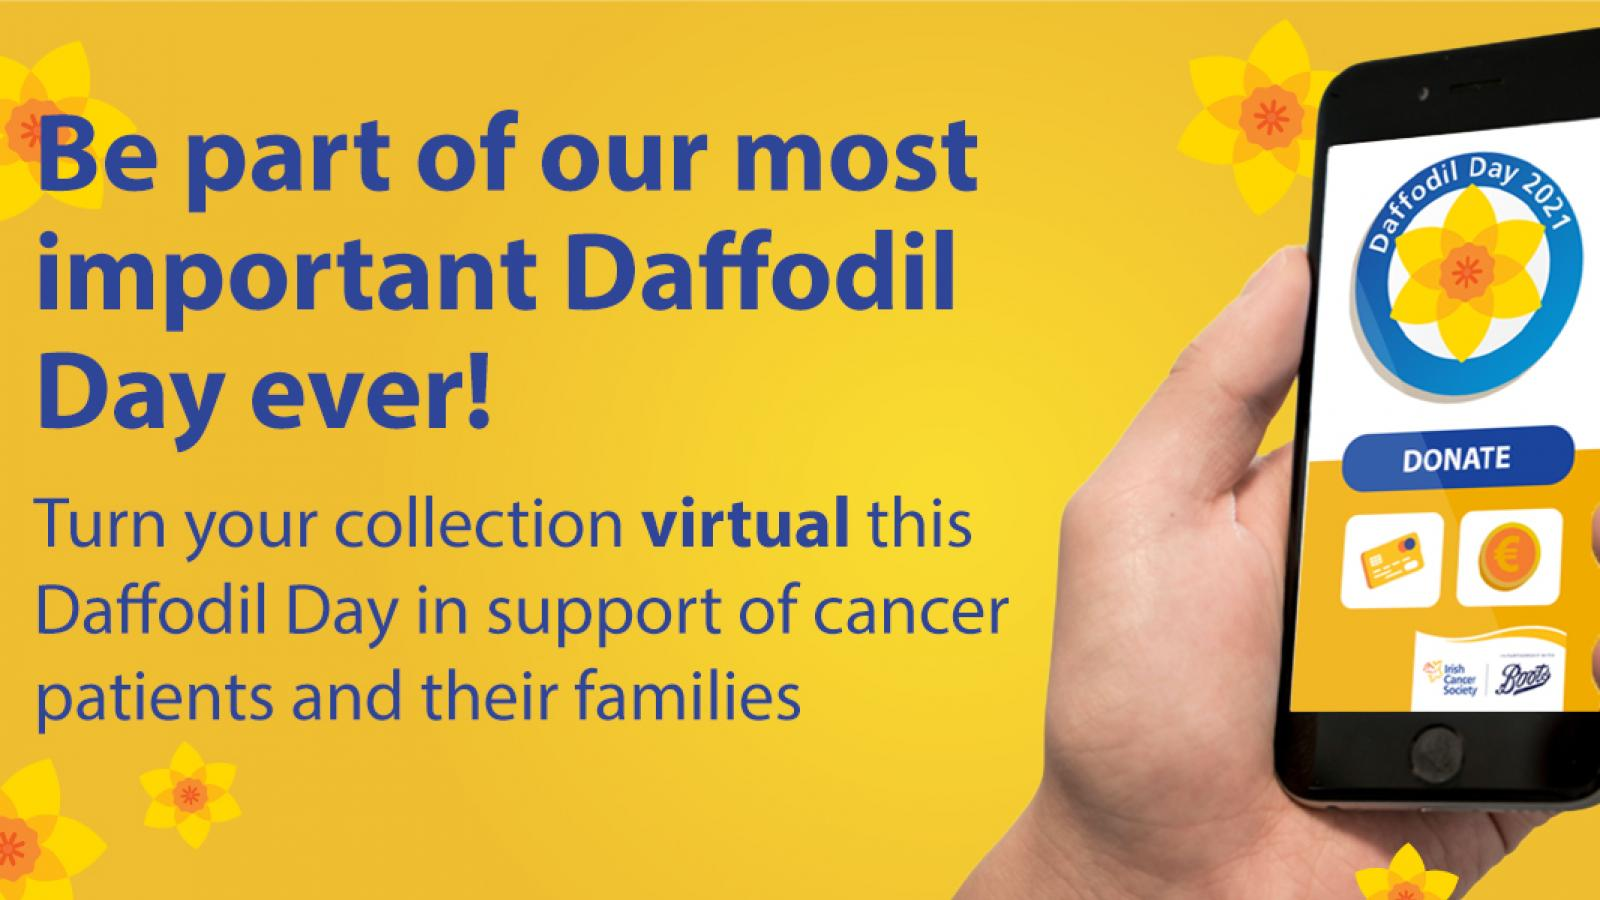 Daffodil Day virtual collection